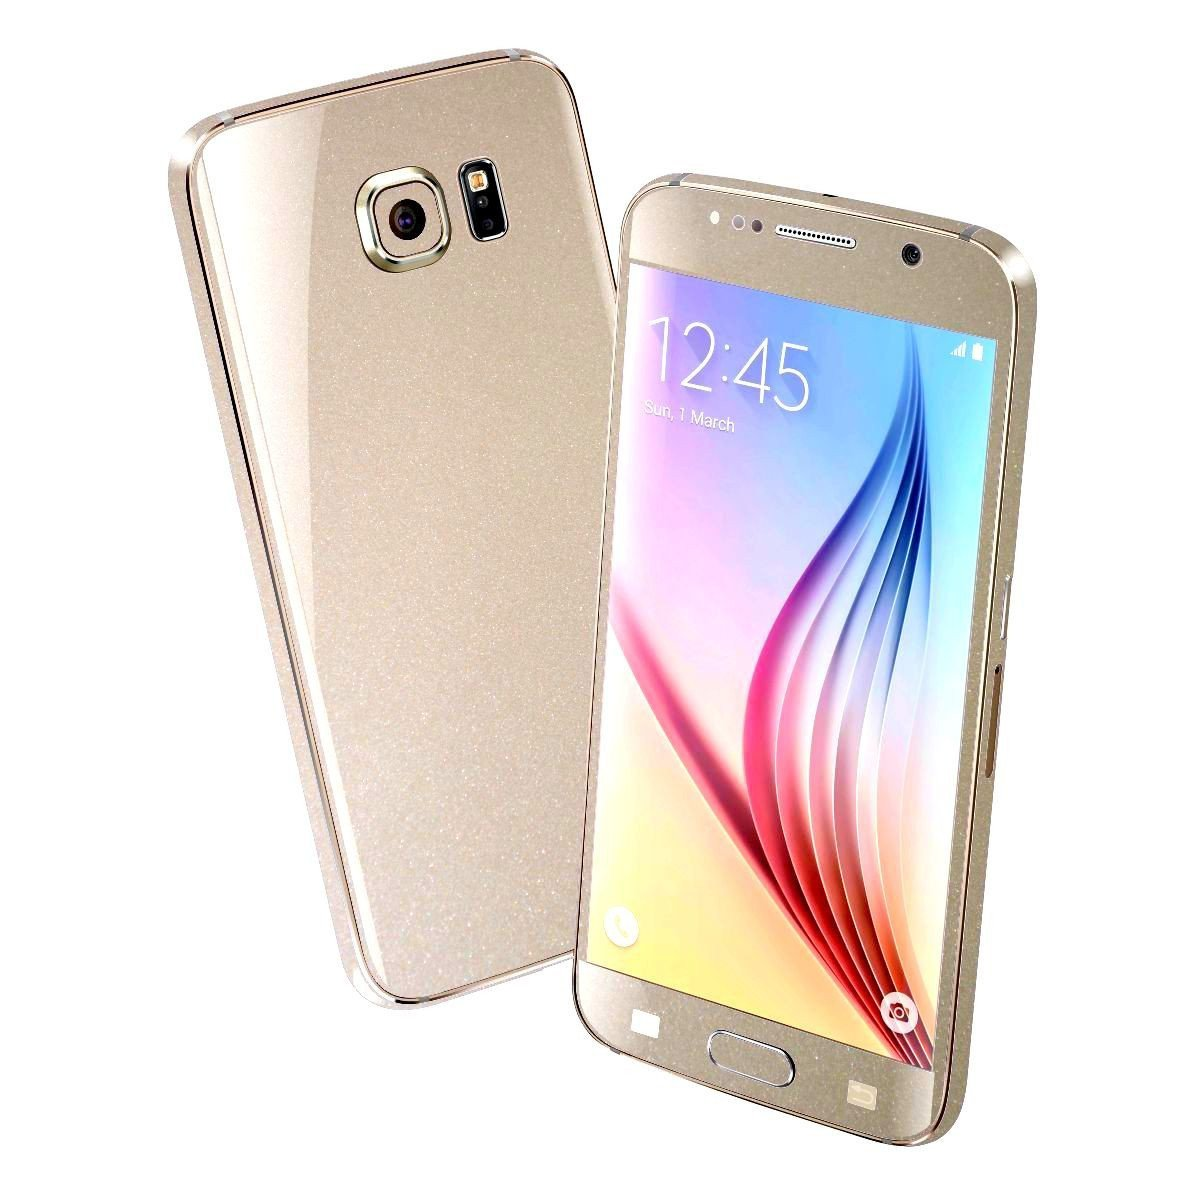 Samsung Galaxy S6 Colorful GLOSSY Champagne Gold Metallic Skin Wrap Sticker Cover Protector Decal by EasySkinz